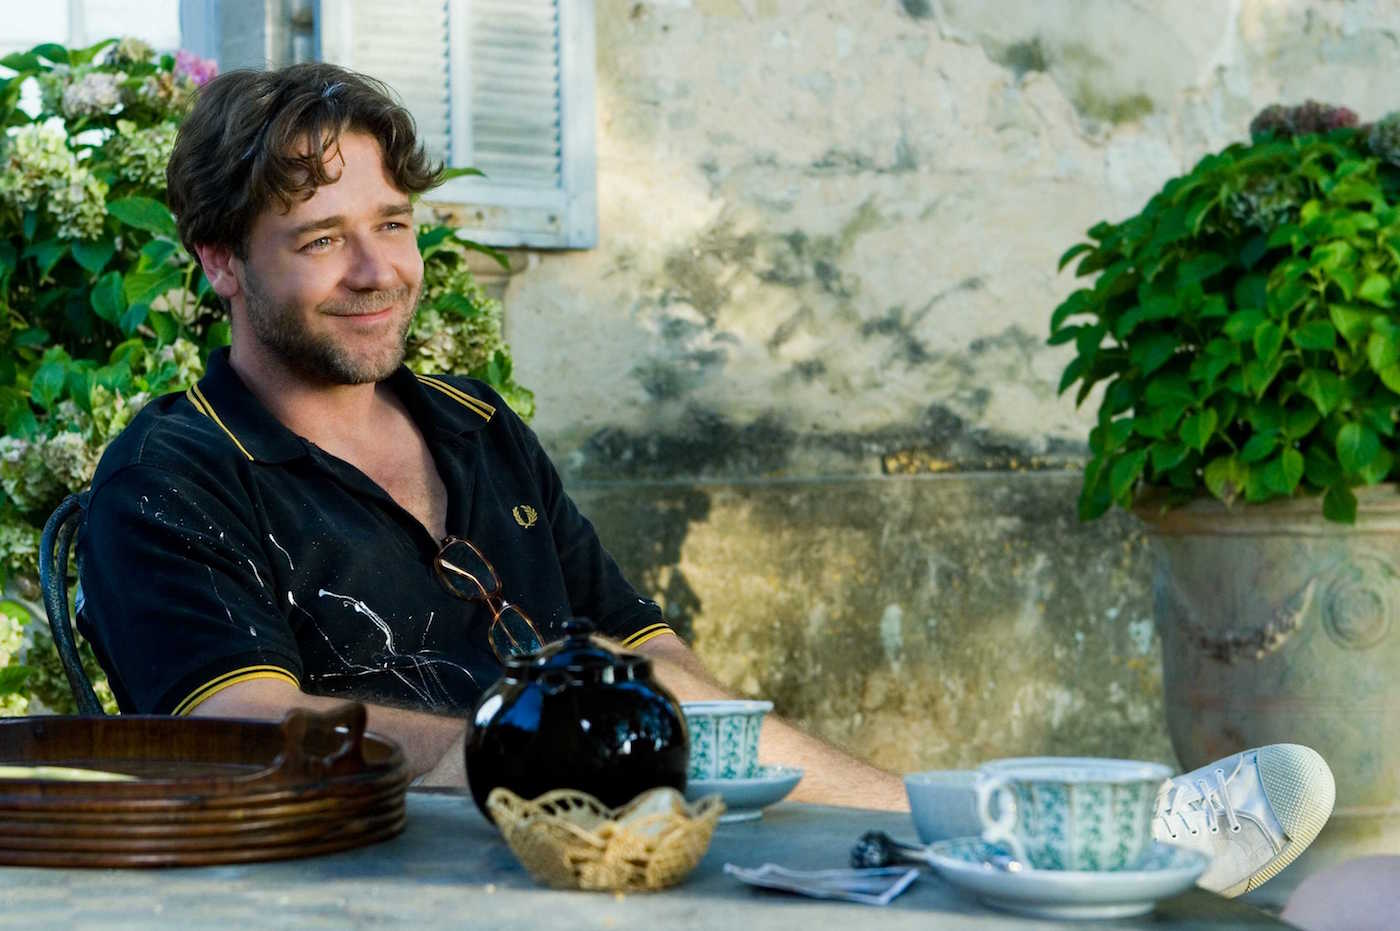 G-109 In Provence, Max Skinner (Russell Crowe) settles into an intoxicating new chapter in his life in A GOOD YEAR.